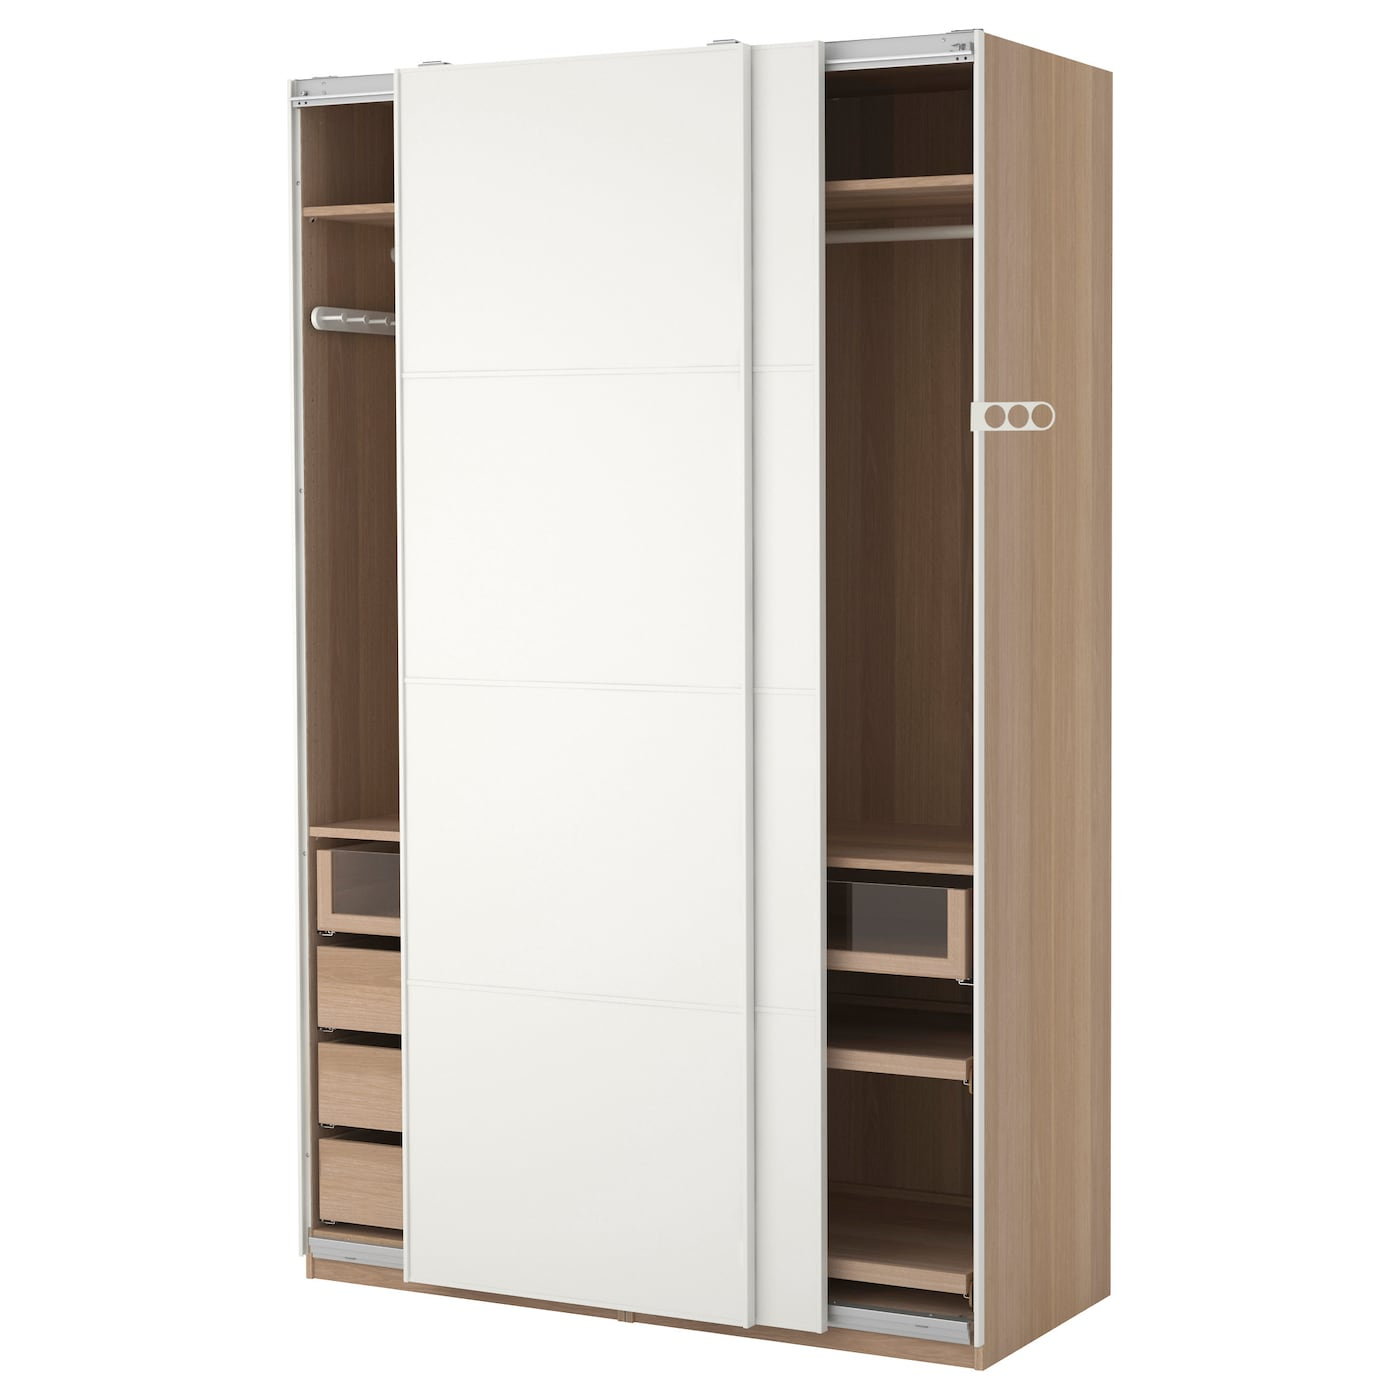 pax wardrobe white stained oak effect mehamn white. Black Bedroom Furniture Sets. Home Design Ideas